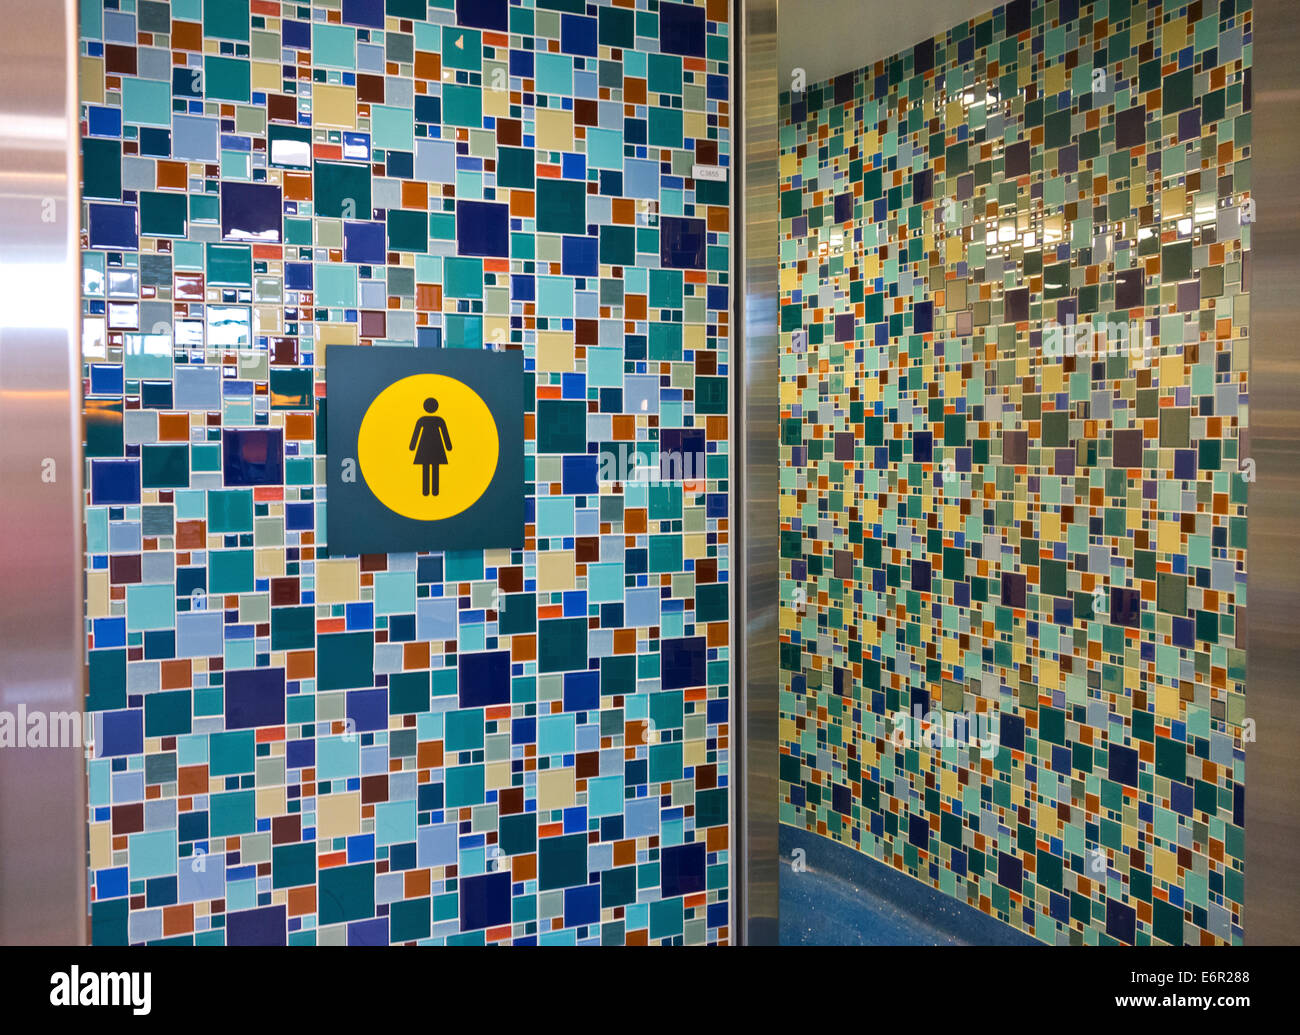 colorful-tile-mosaic-pattern-on-walls-of